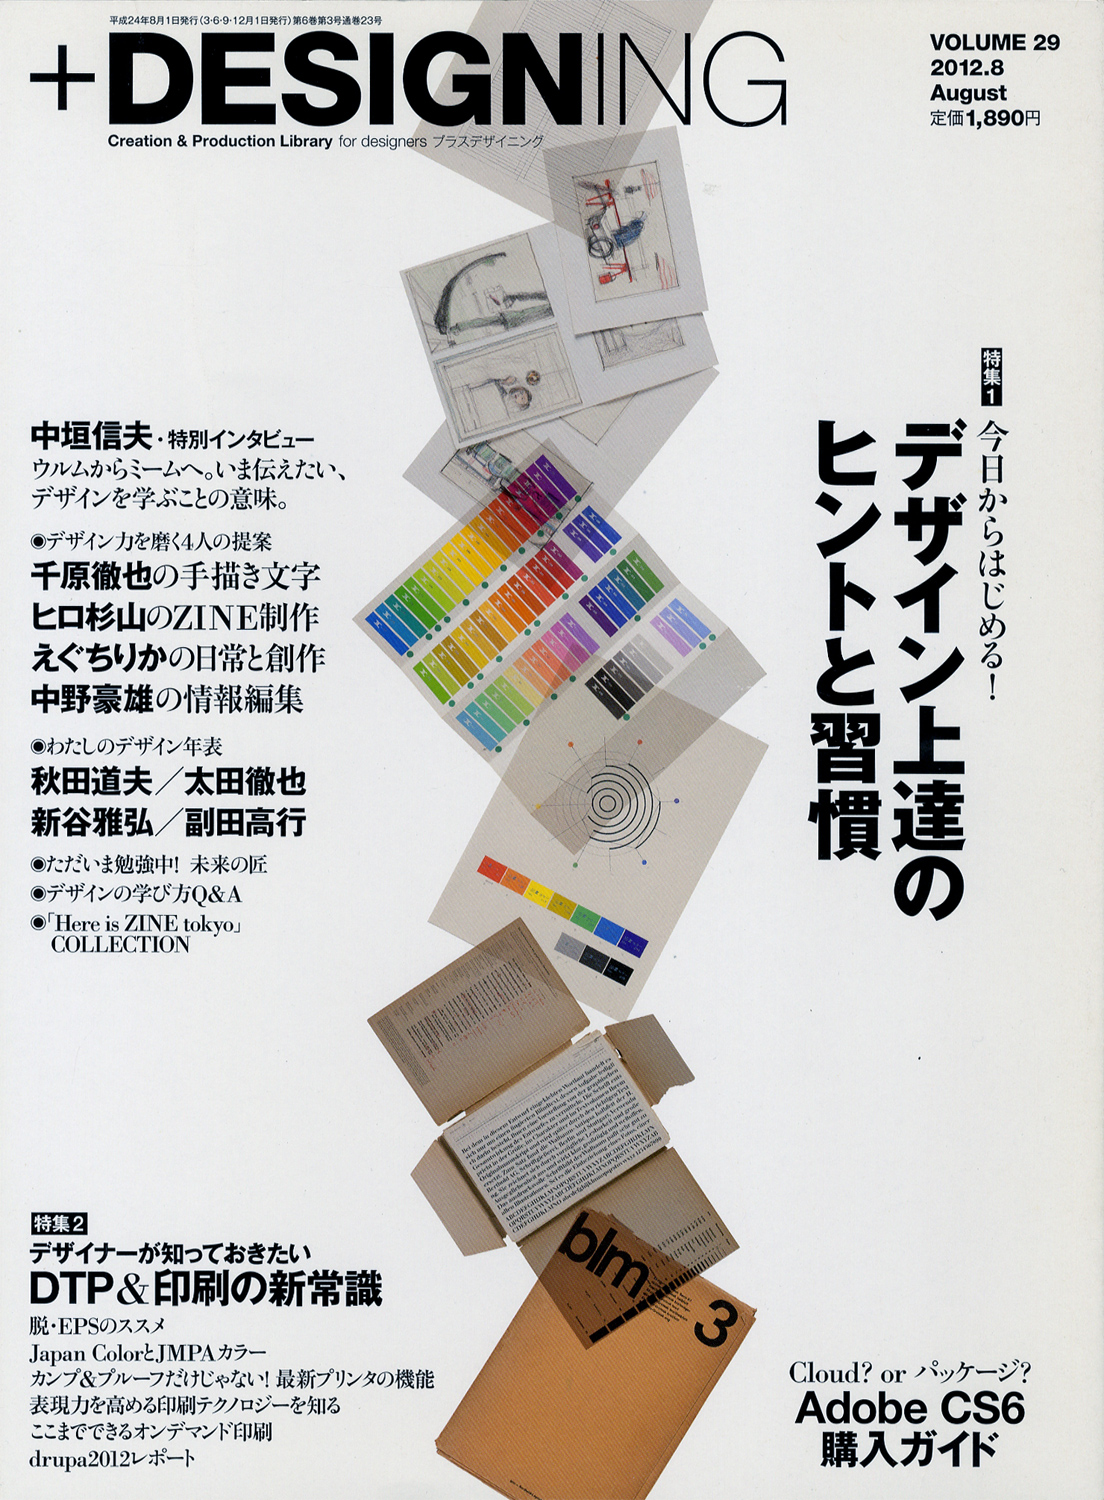 +DESIGNING VOLUME 29 2012.8 August[image1]